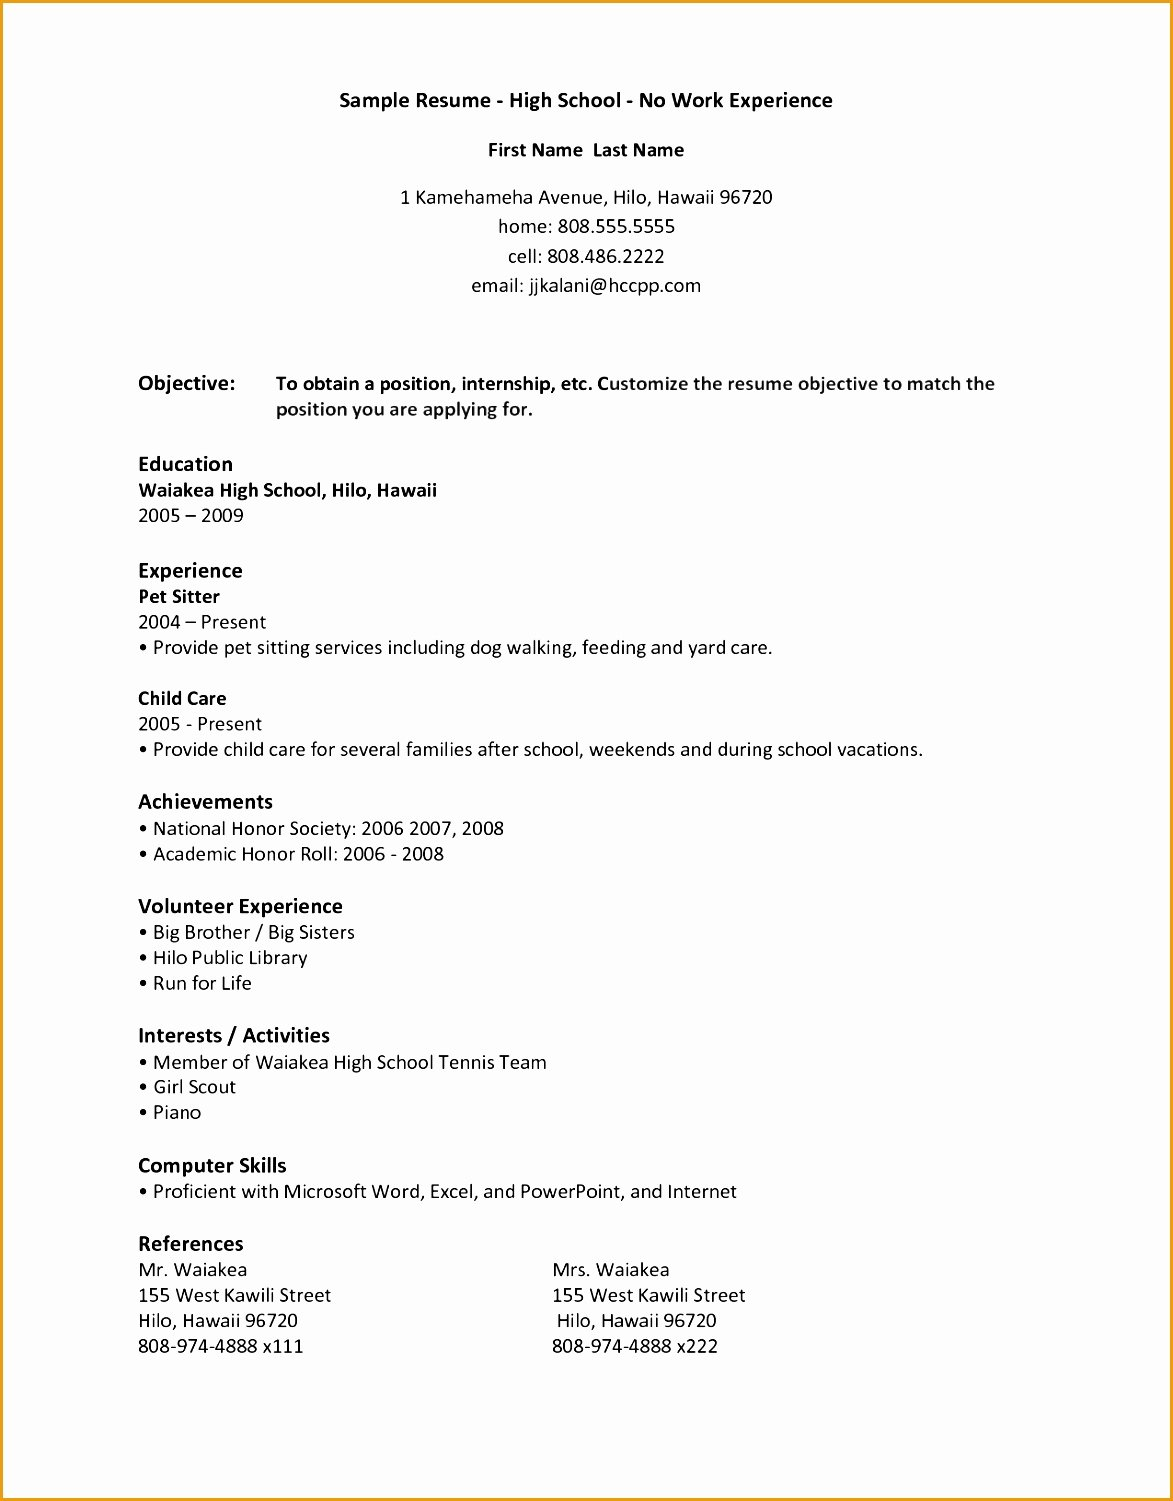 High School Resume Builder Elegant 8 Resume Sample for High School Students with No